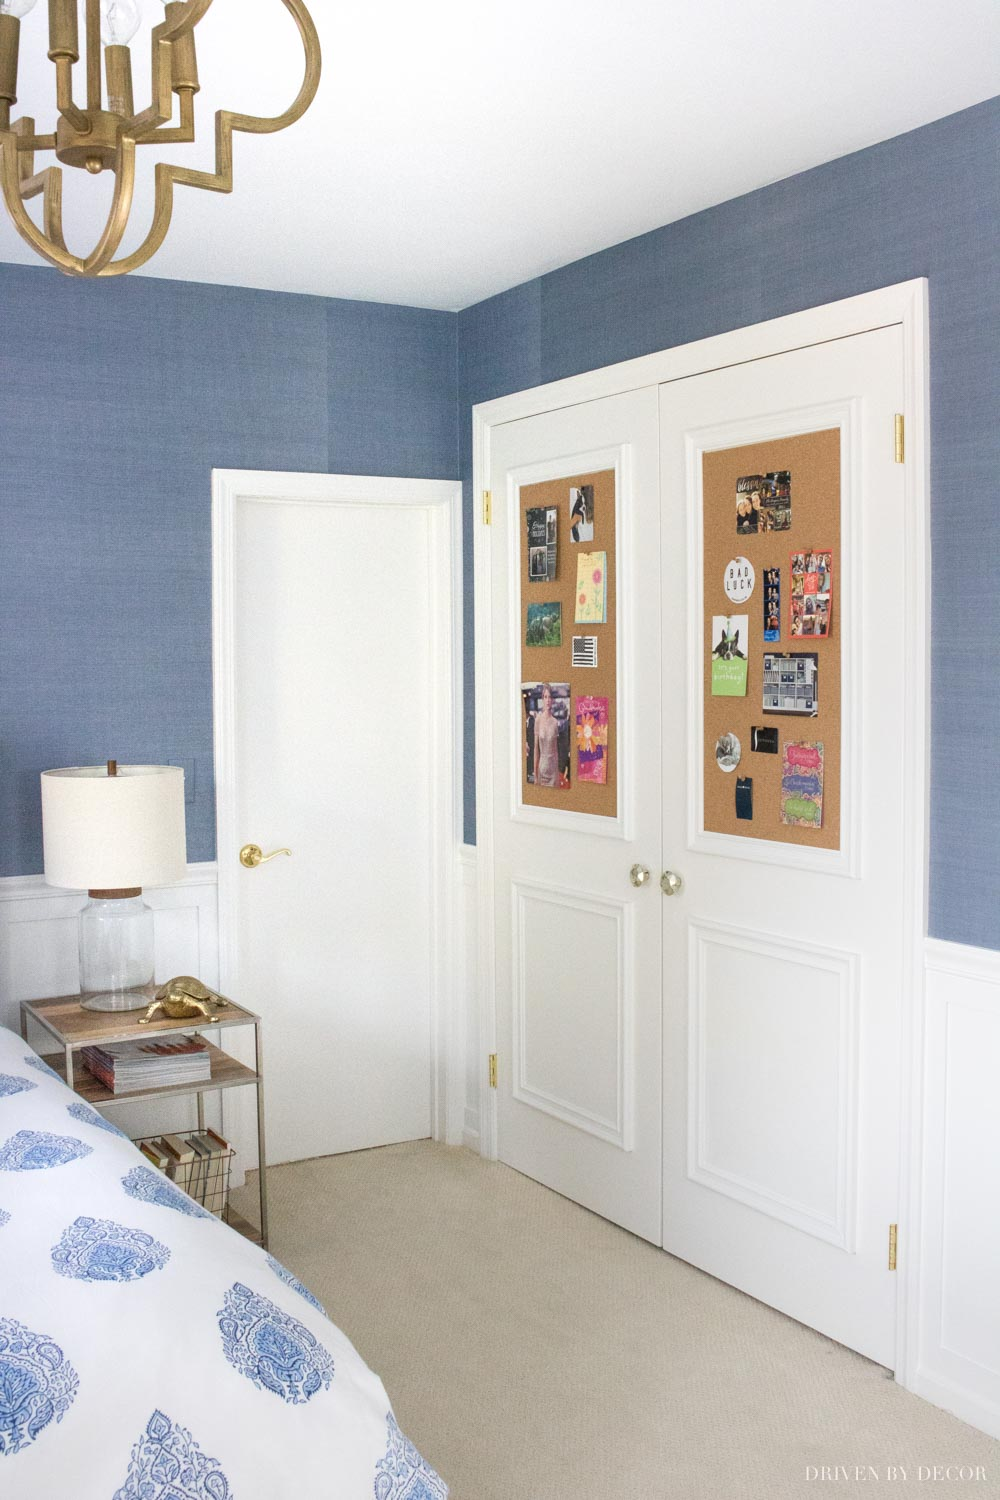 Such a great post about hanging grasscloth wallpaper!